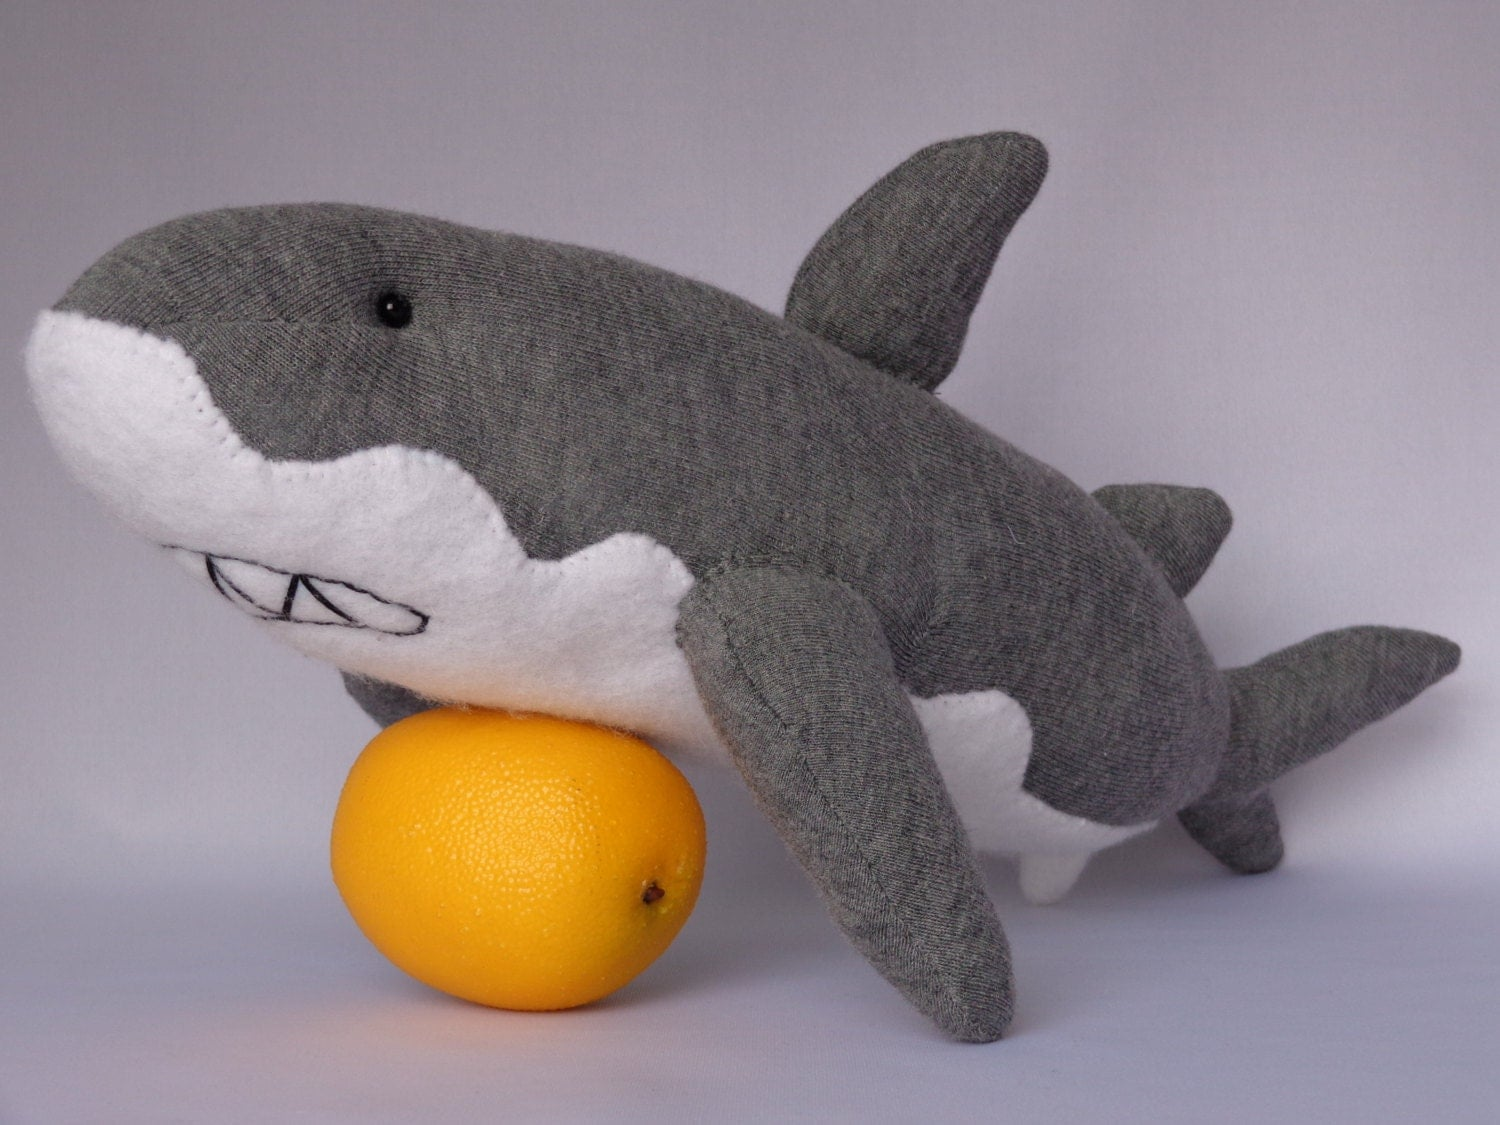 Shark Plush Toys : Shark plush toy stuffed animal sock monkey doll